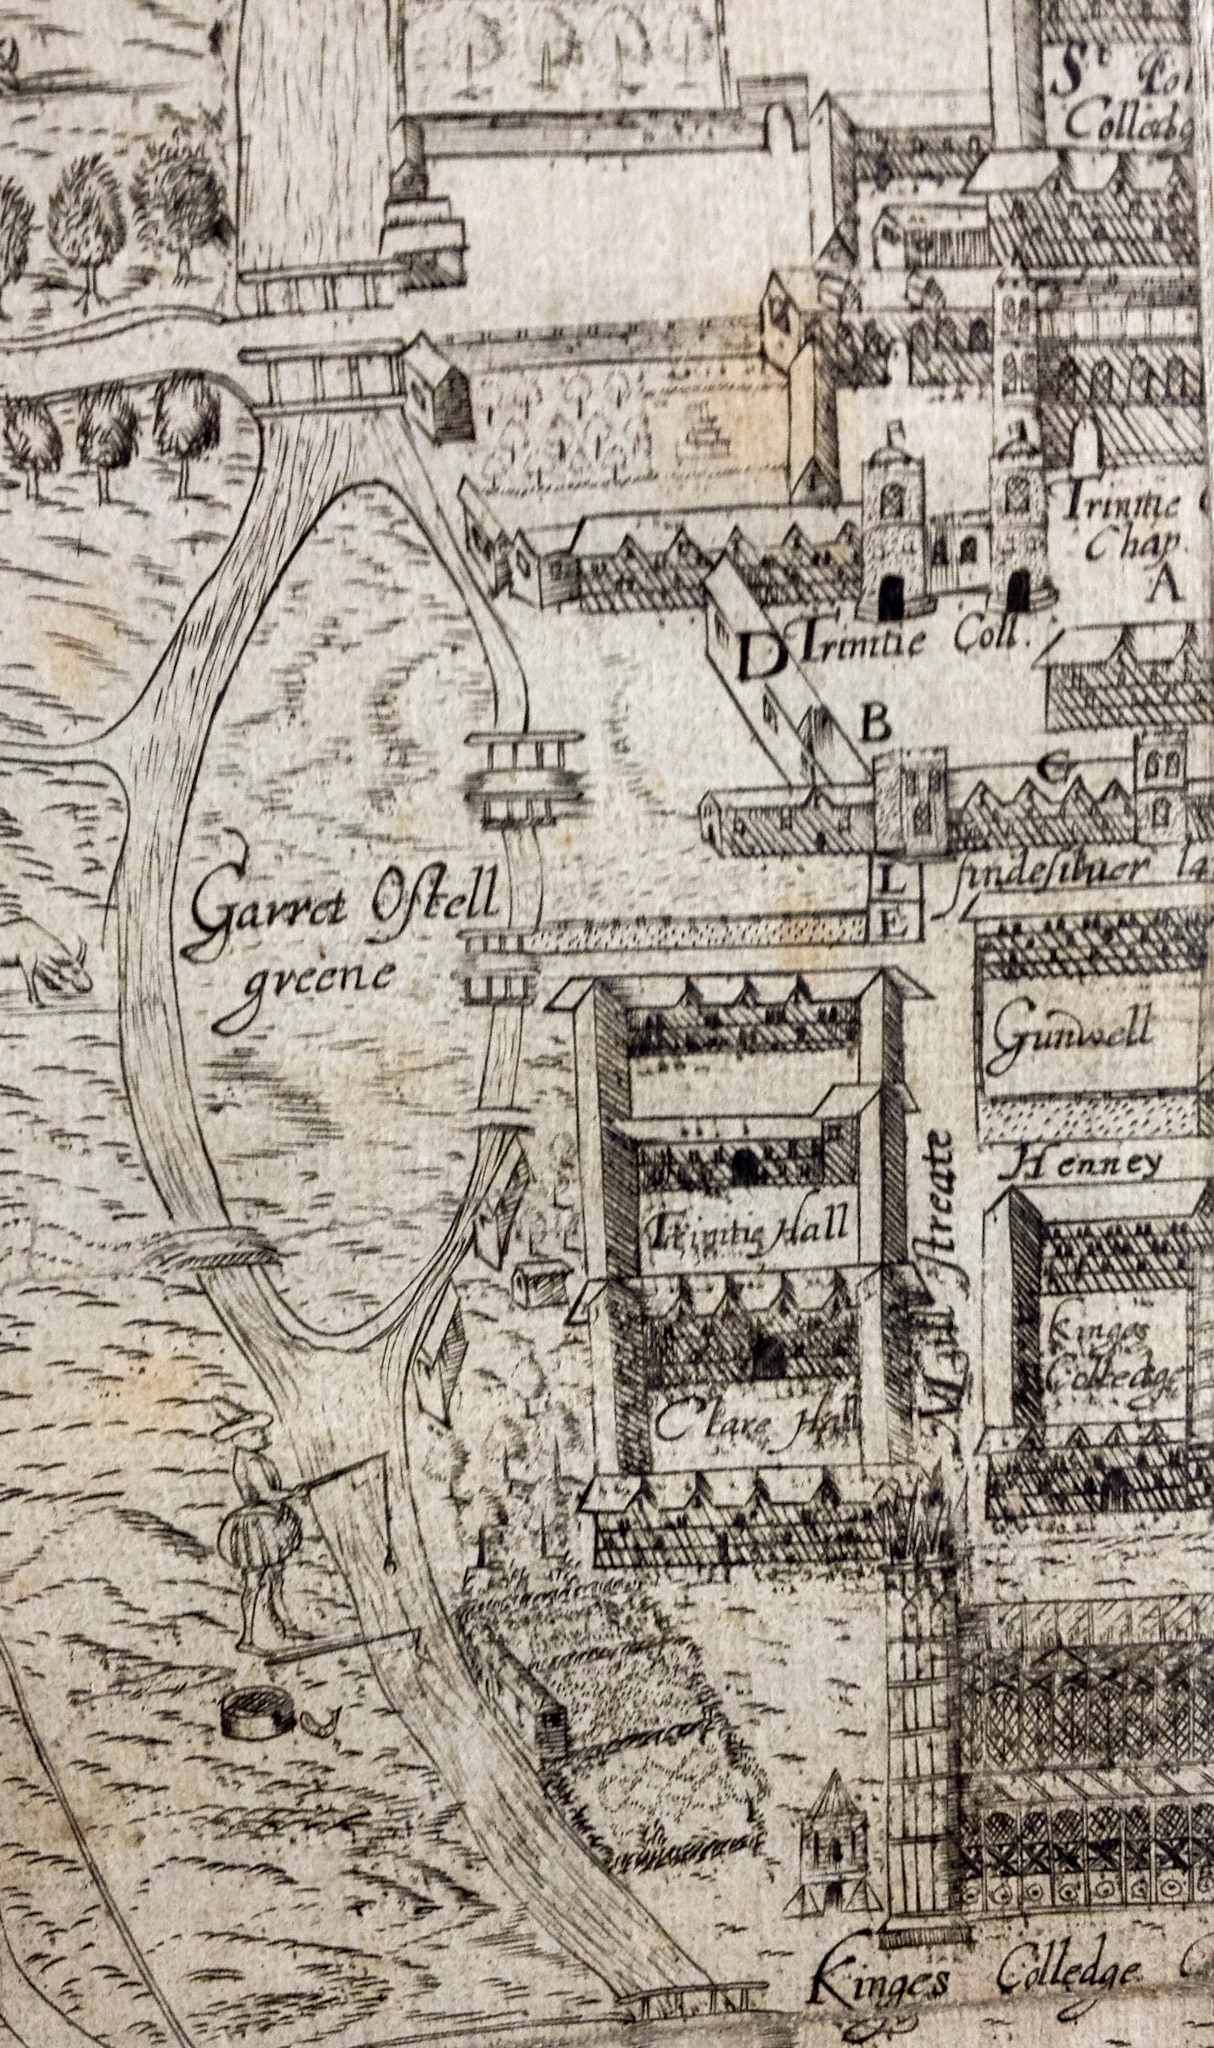 Garret Hostel Green as an island, from Lyne's map of 1574